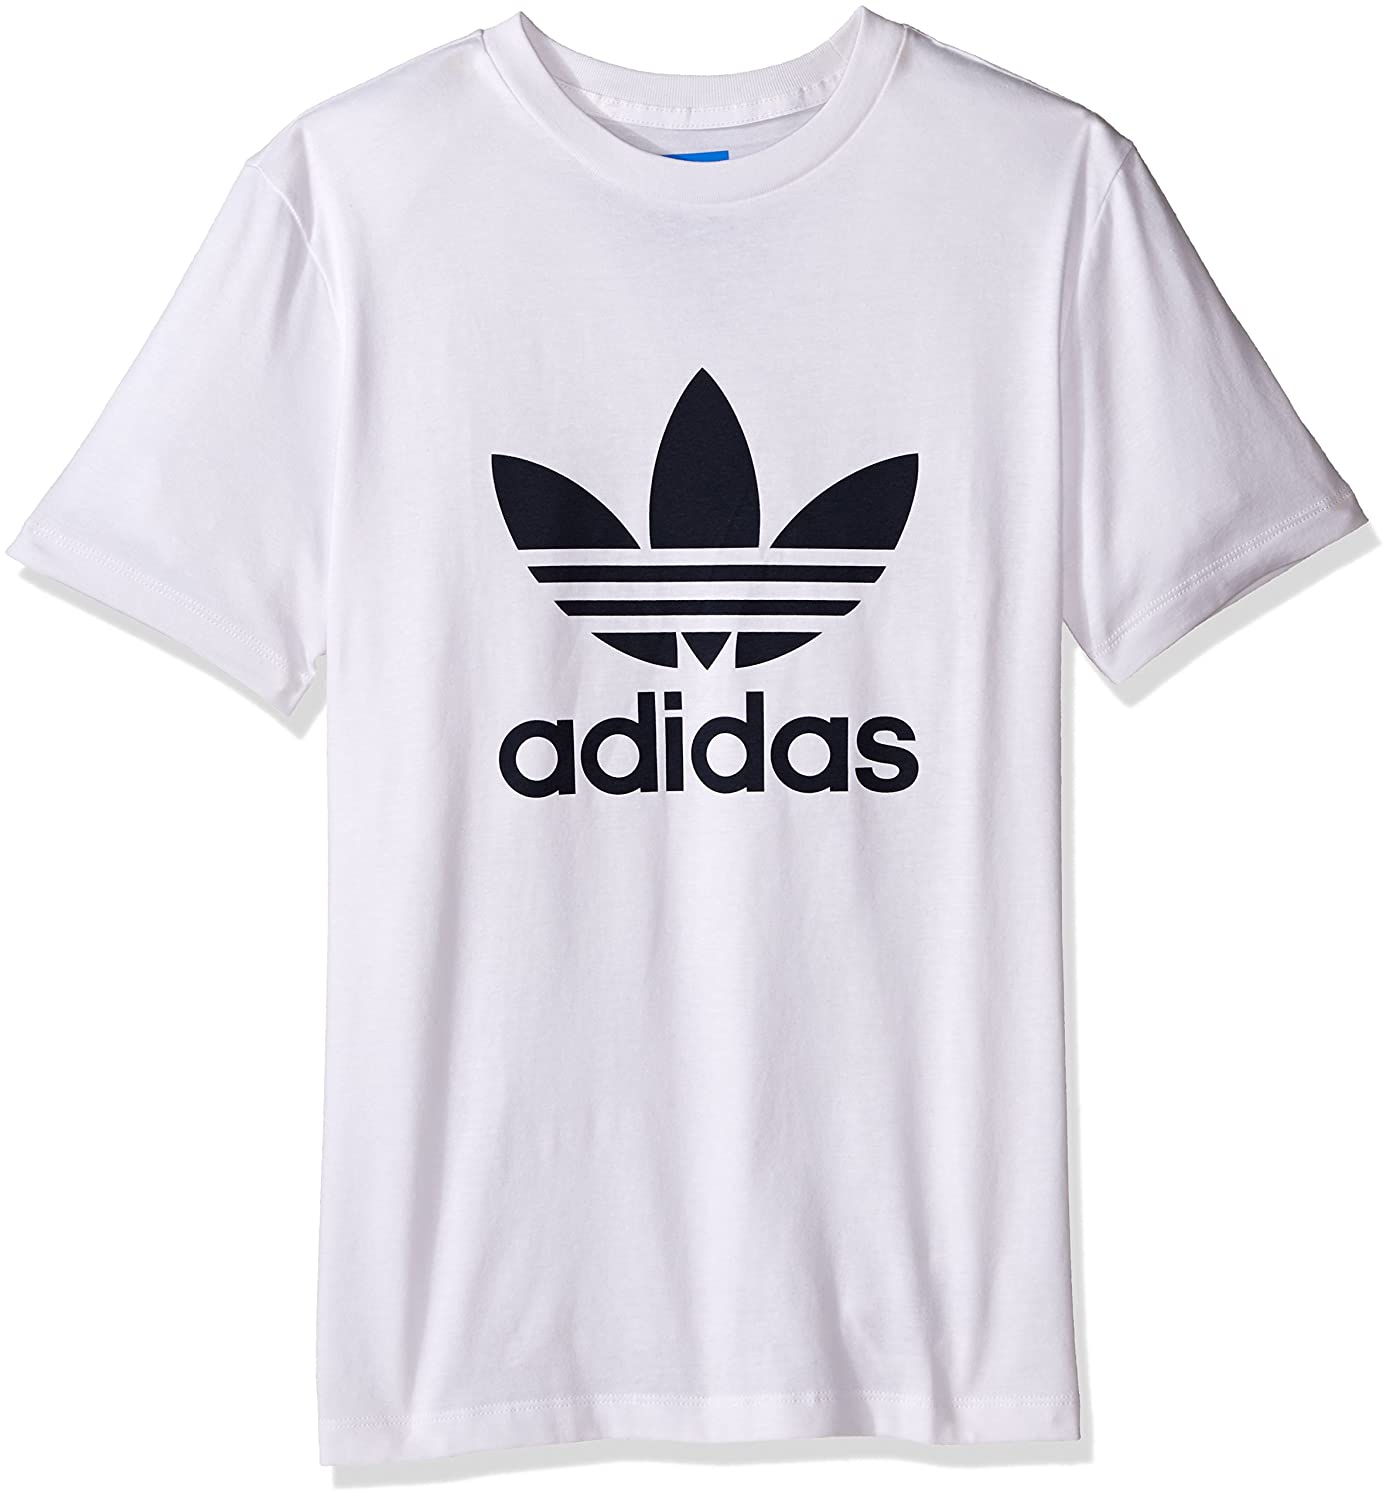 Adidas t shirt black white - Adidas T Shirt Black White 18